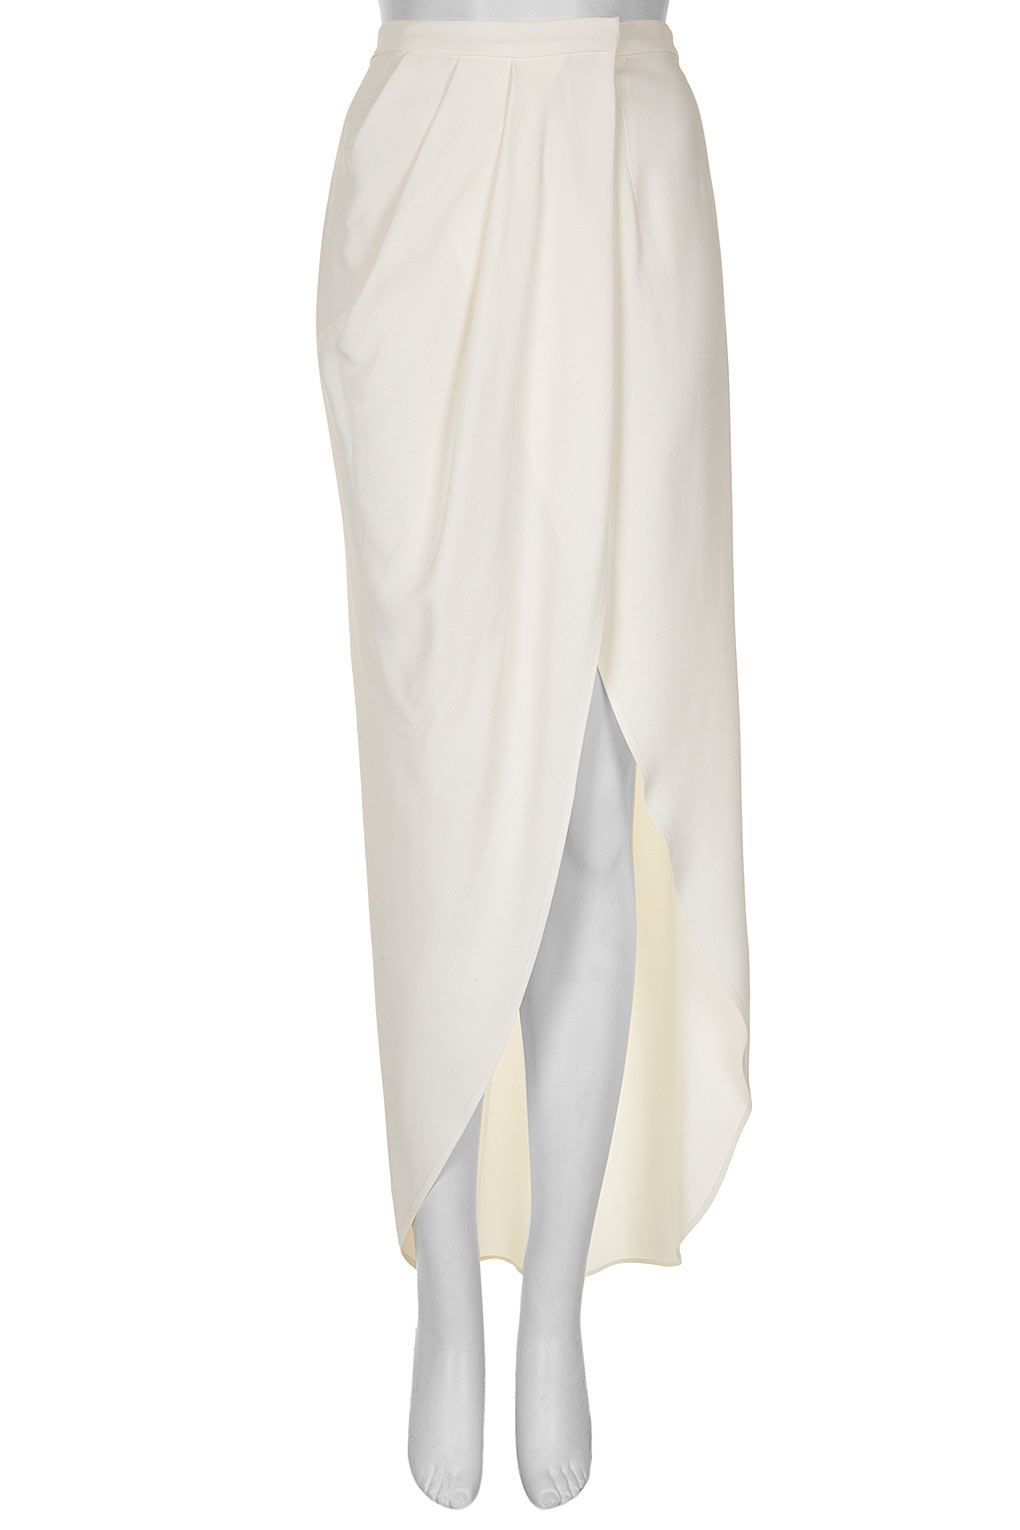 Topshop Wrap Maxi Skirt in White | Lyst